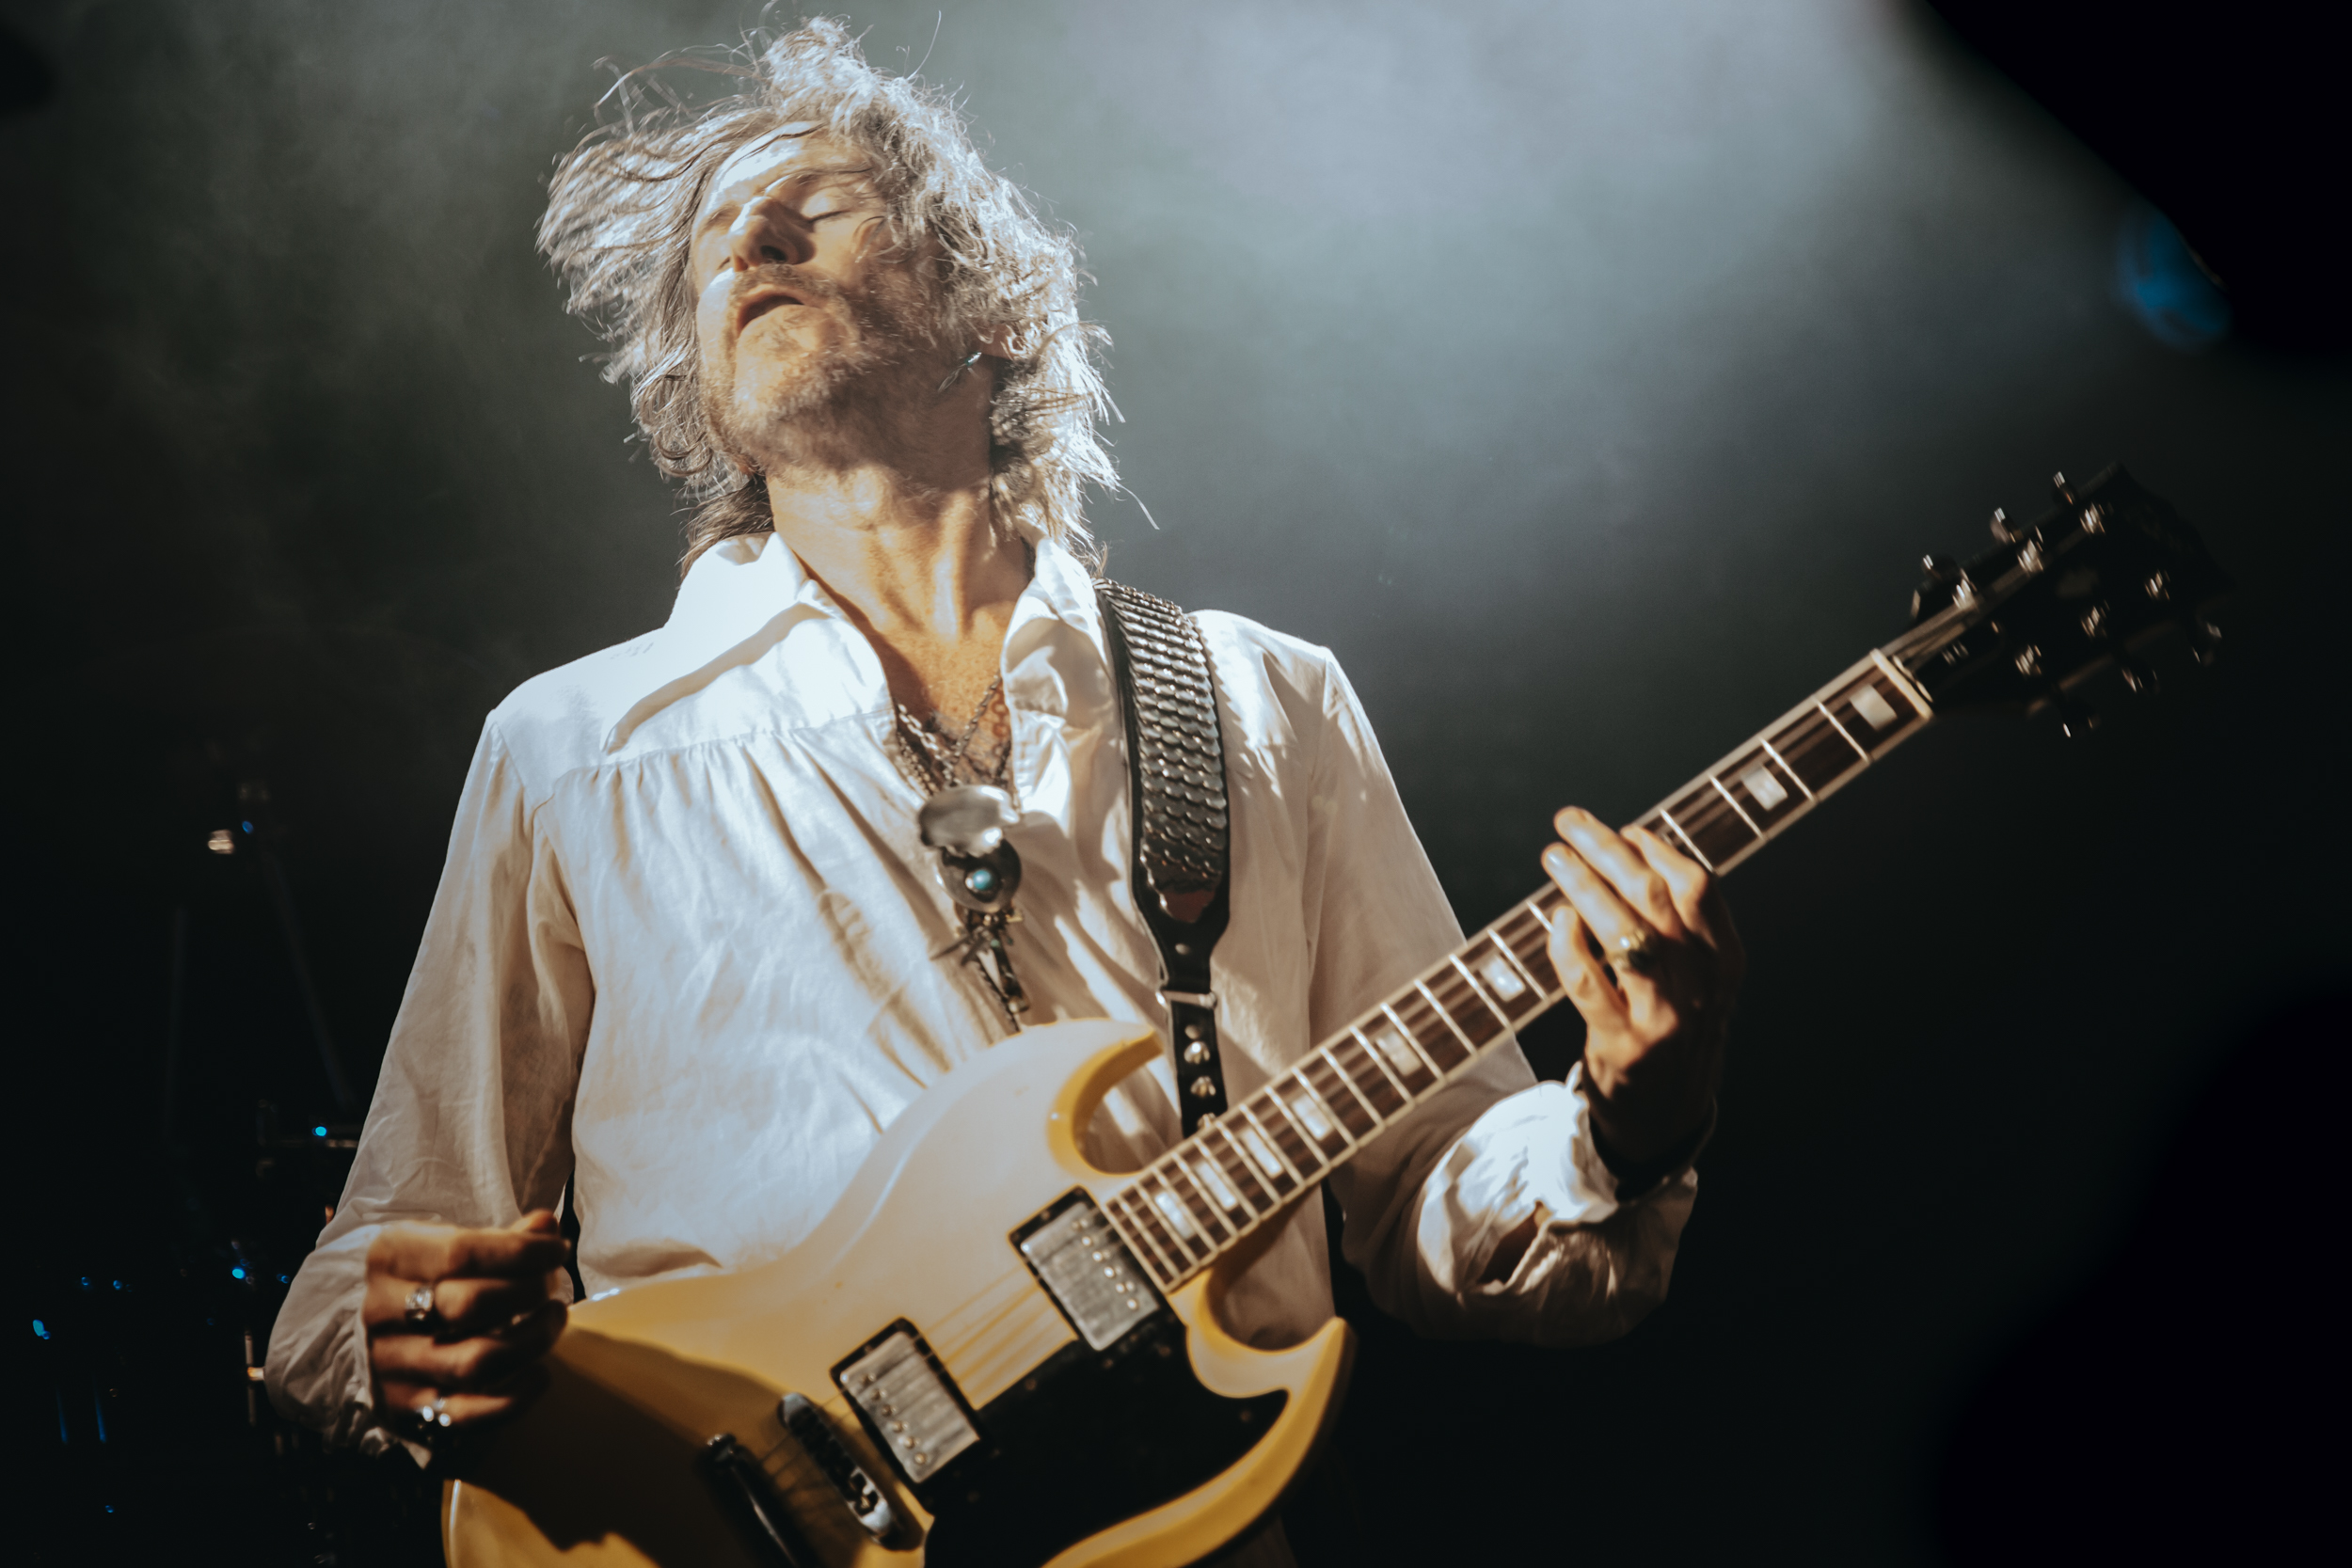 """Review - """"Laughter isn't usually a response a band would want from their epic performance. But tonight it's in abundance and it's magnificent."""""""